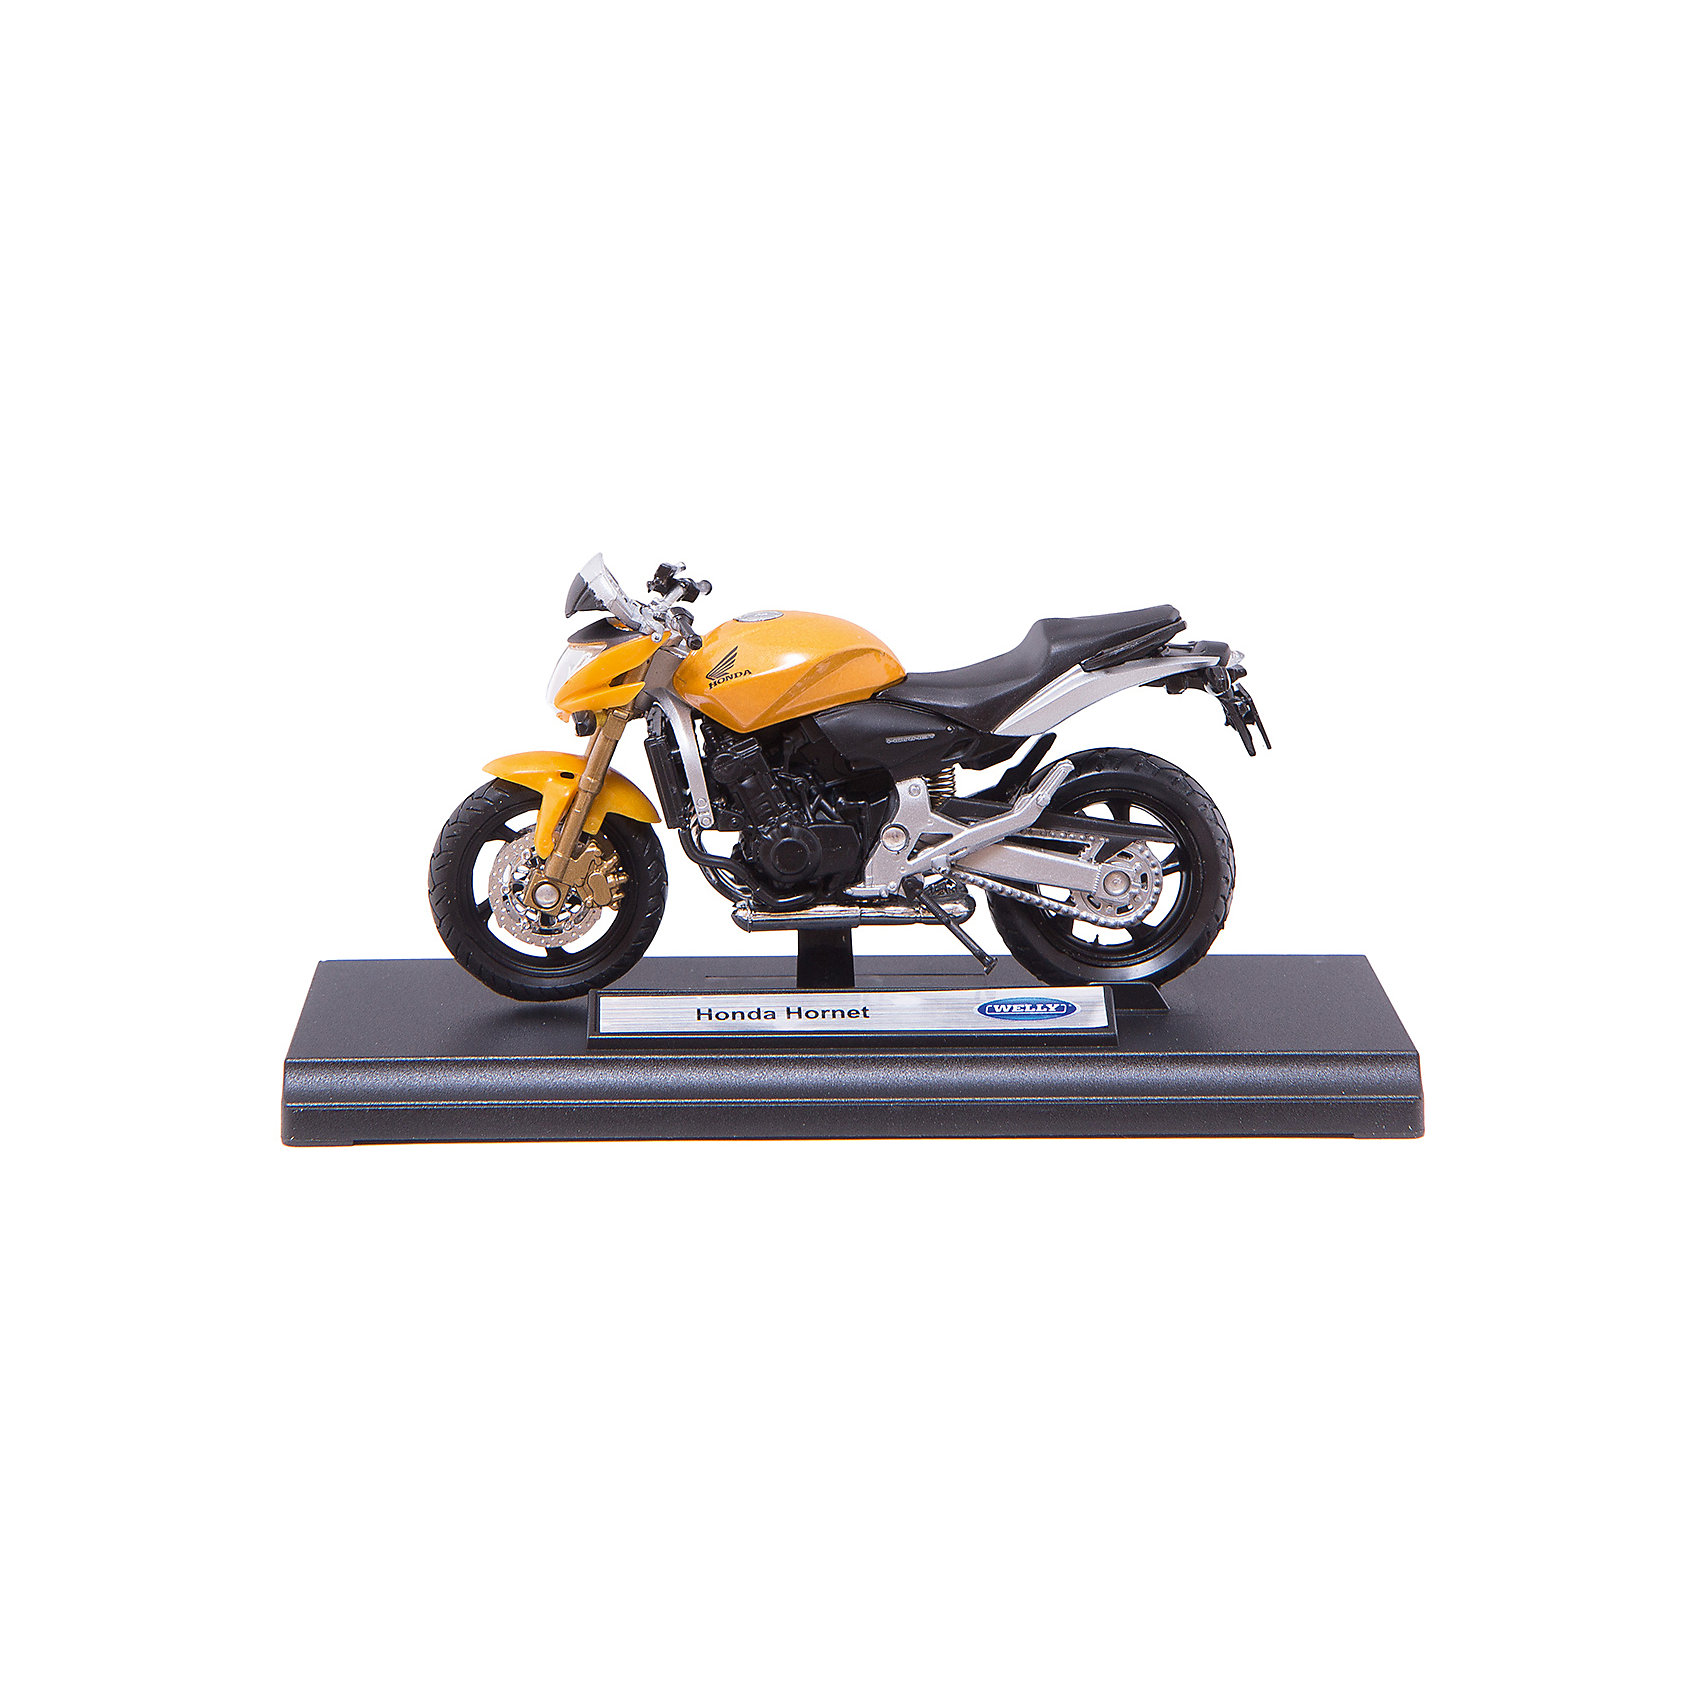 Welly Модель мотоцикла 1:18 Honda Hornet, Welly for honda cb600f cb900f hornet cb1000r motorcycle upgrade front brake system radial brake master cylinder